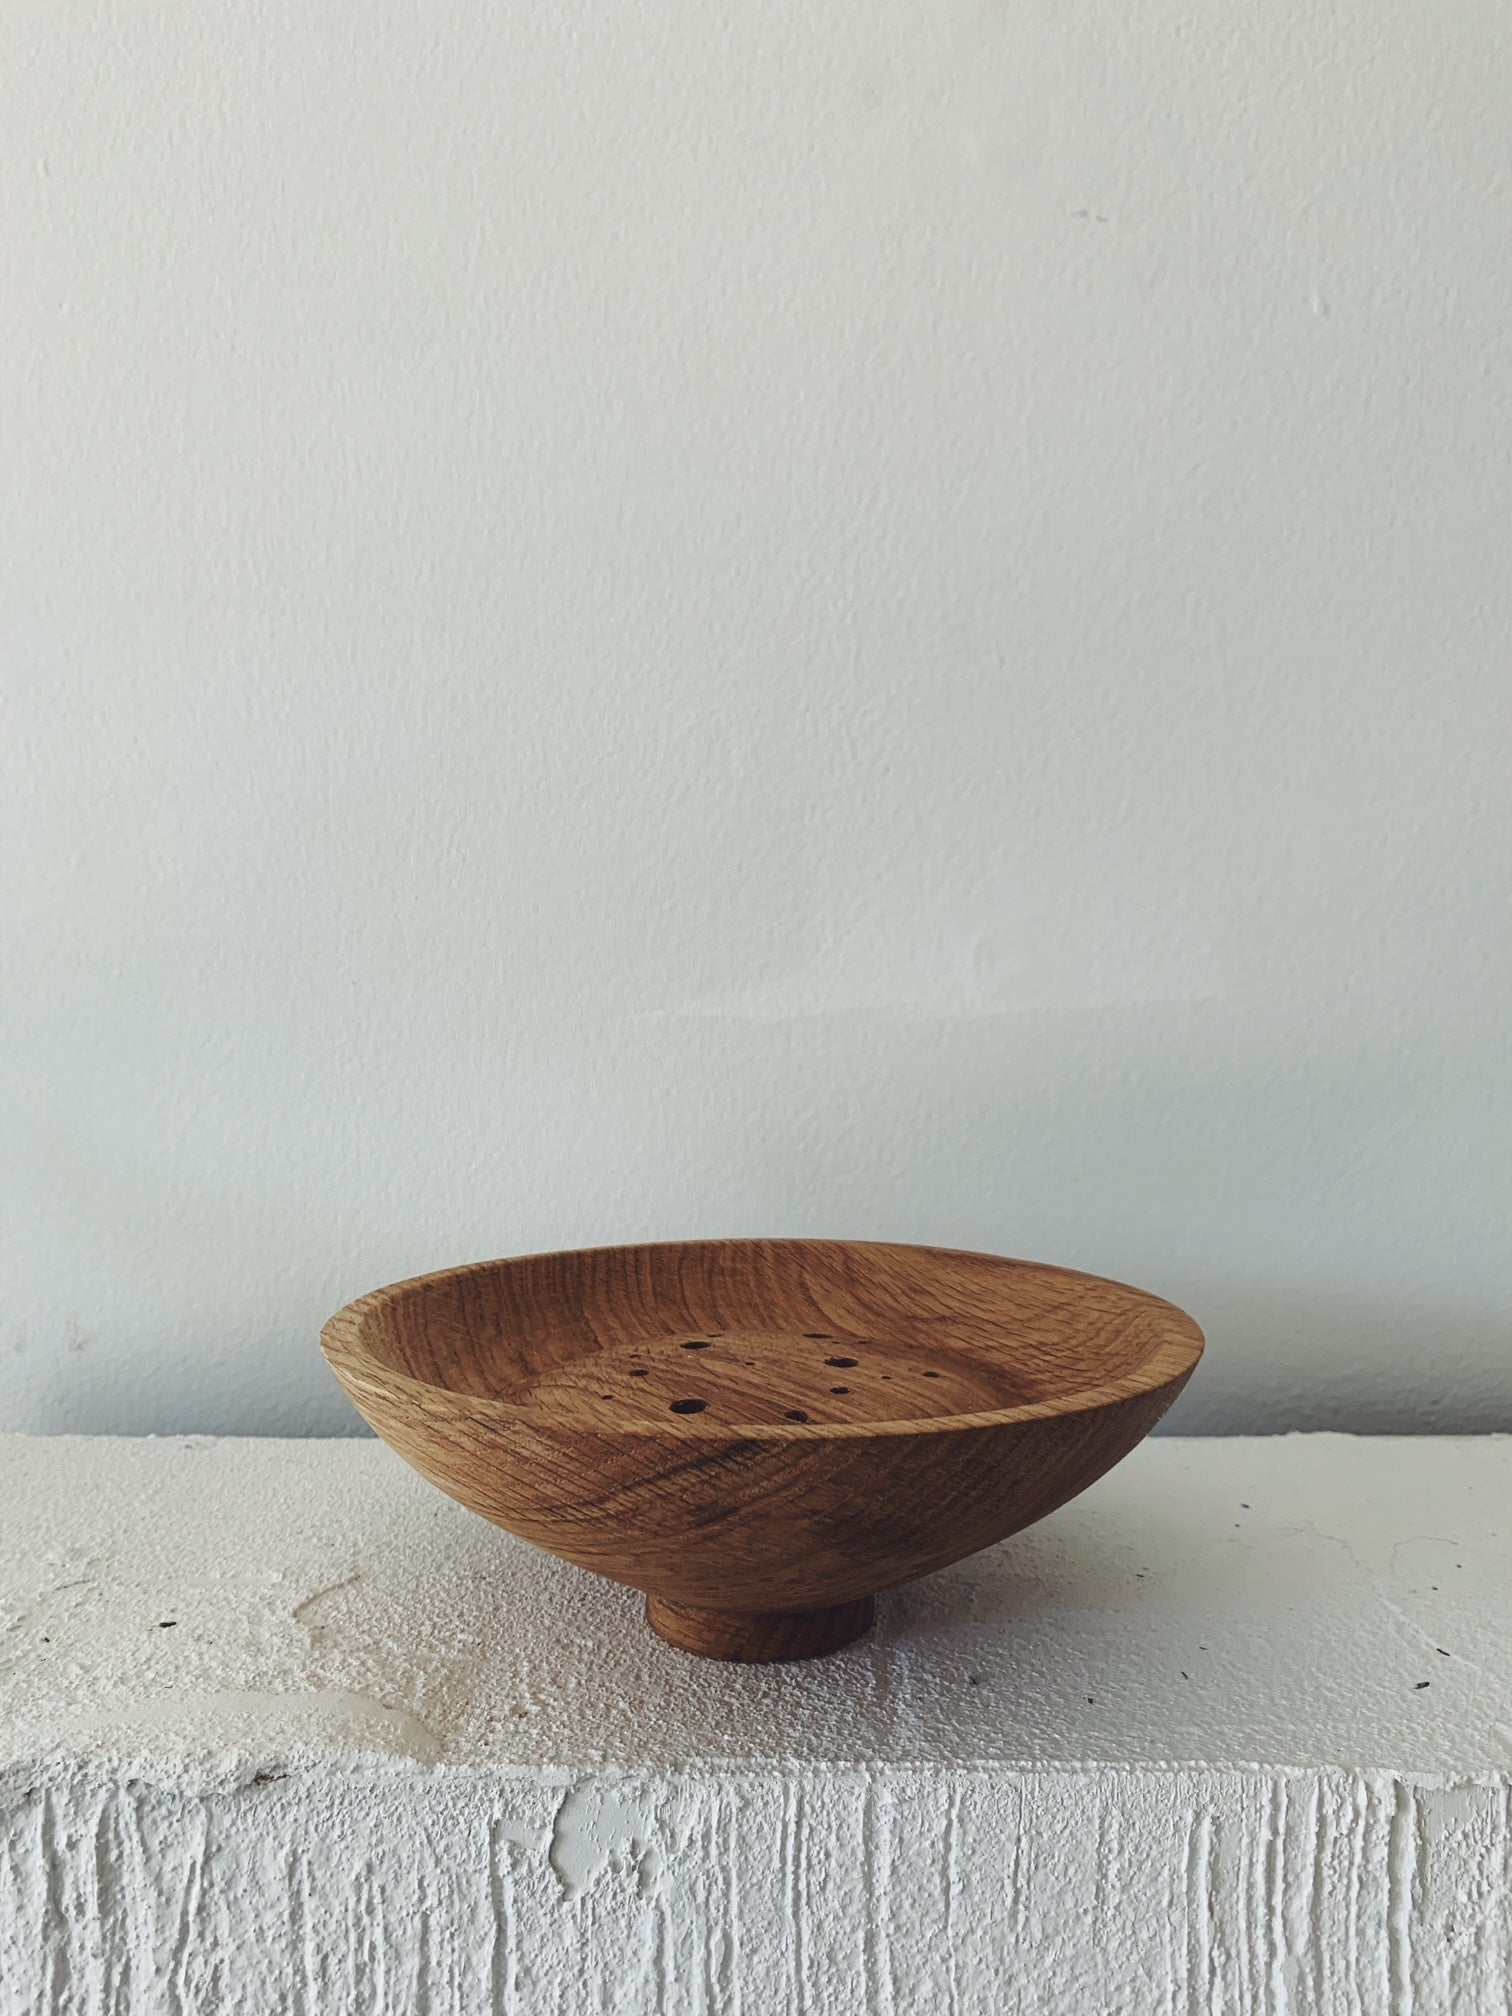 Elise McLauchlan Dried Flower Ikebana Bowl - #5 Oak